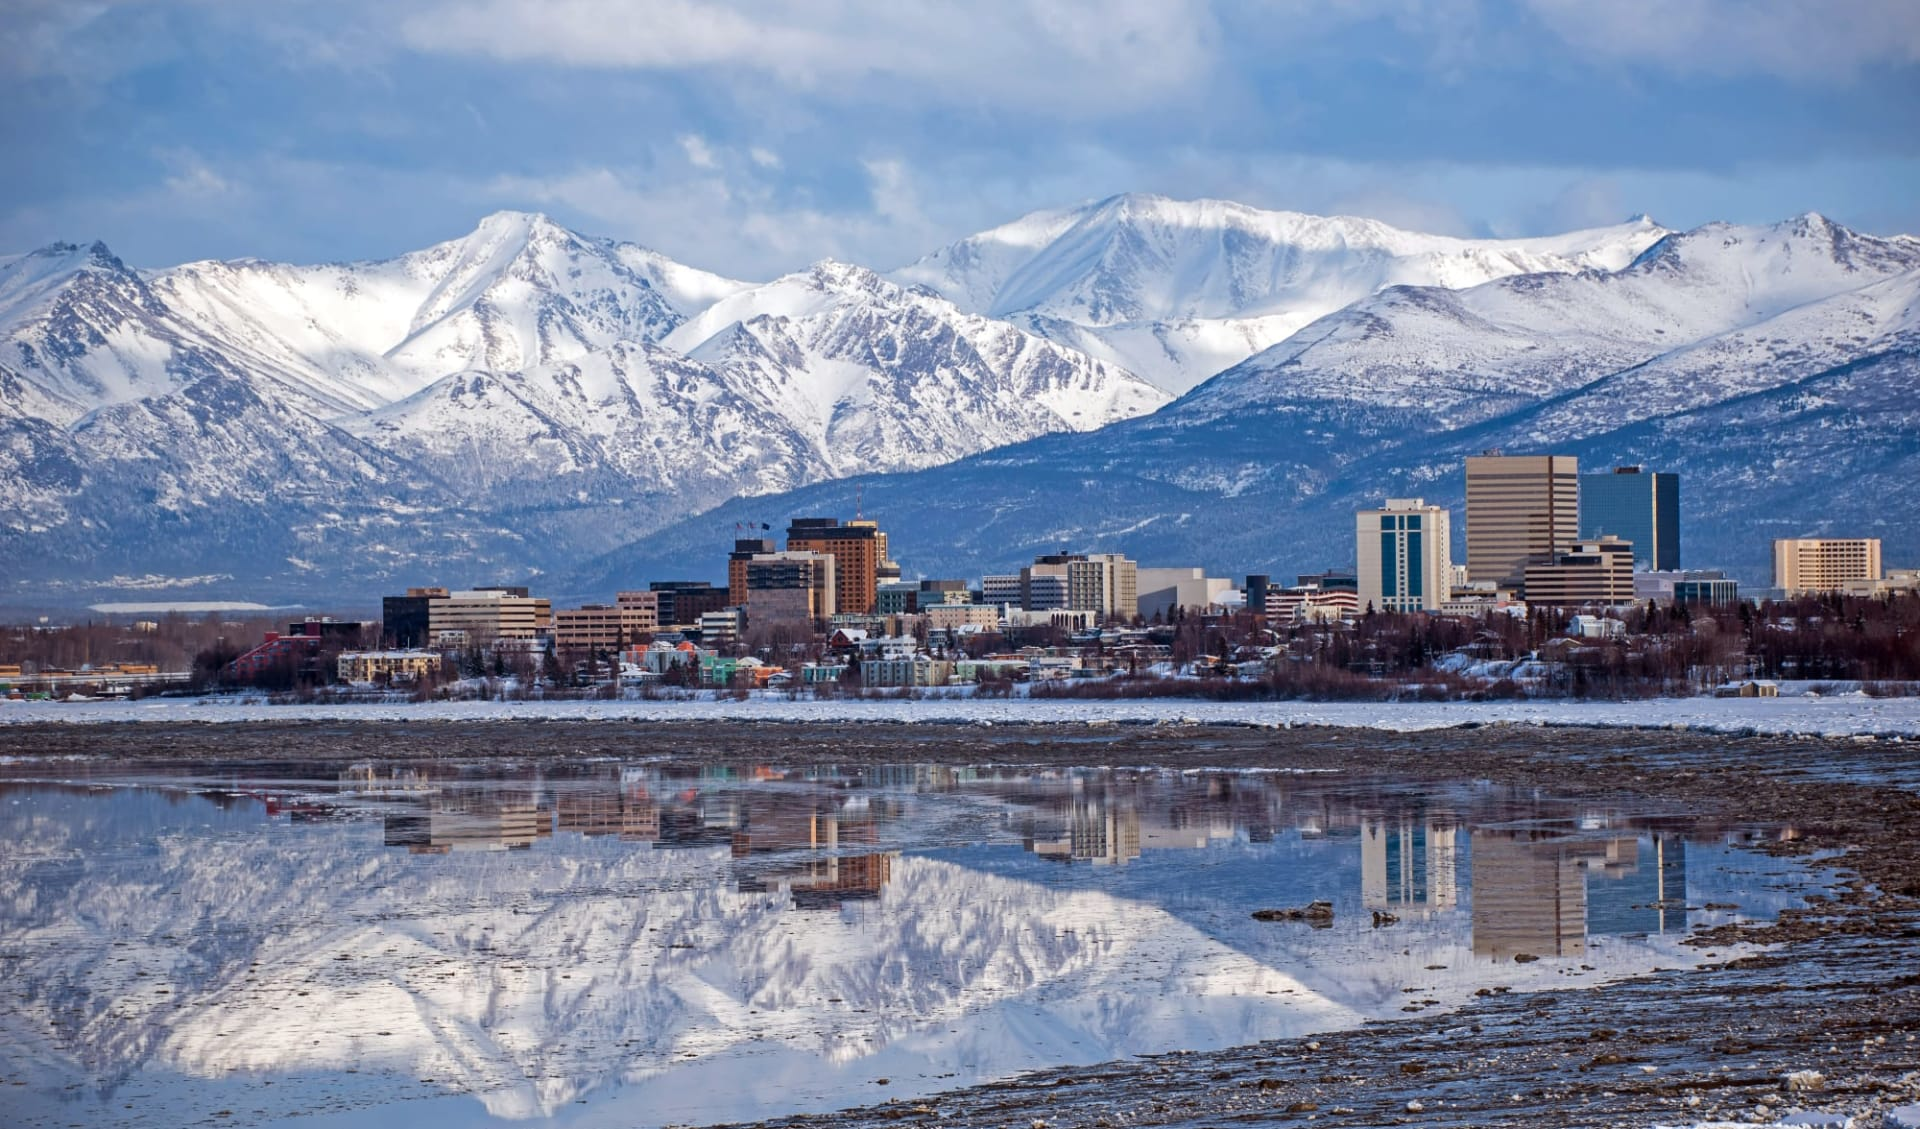 Naturwunder Alaskas ab Anchorage: Alaska - Anchorage - Skyline